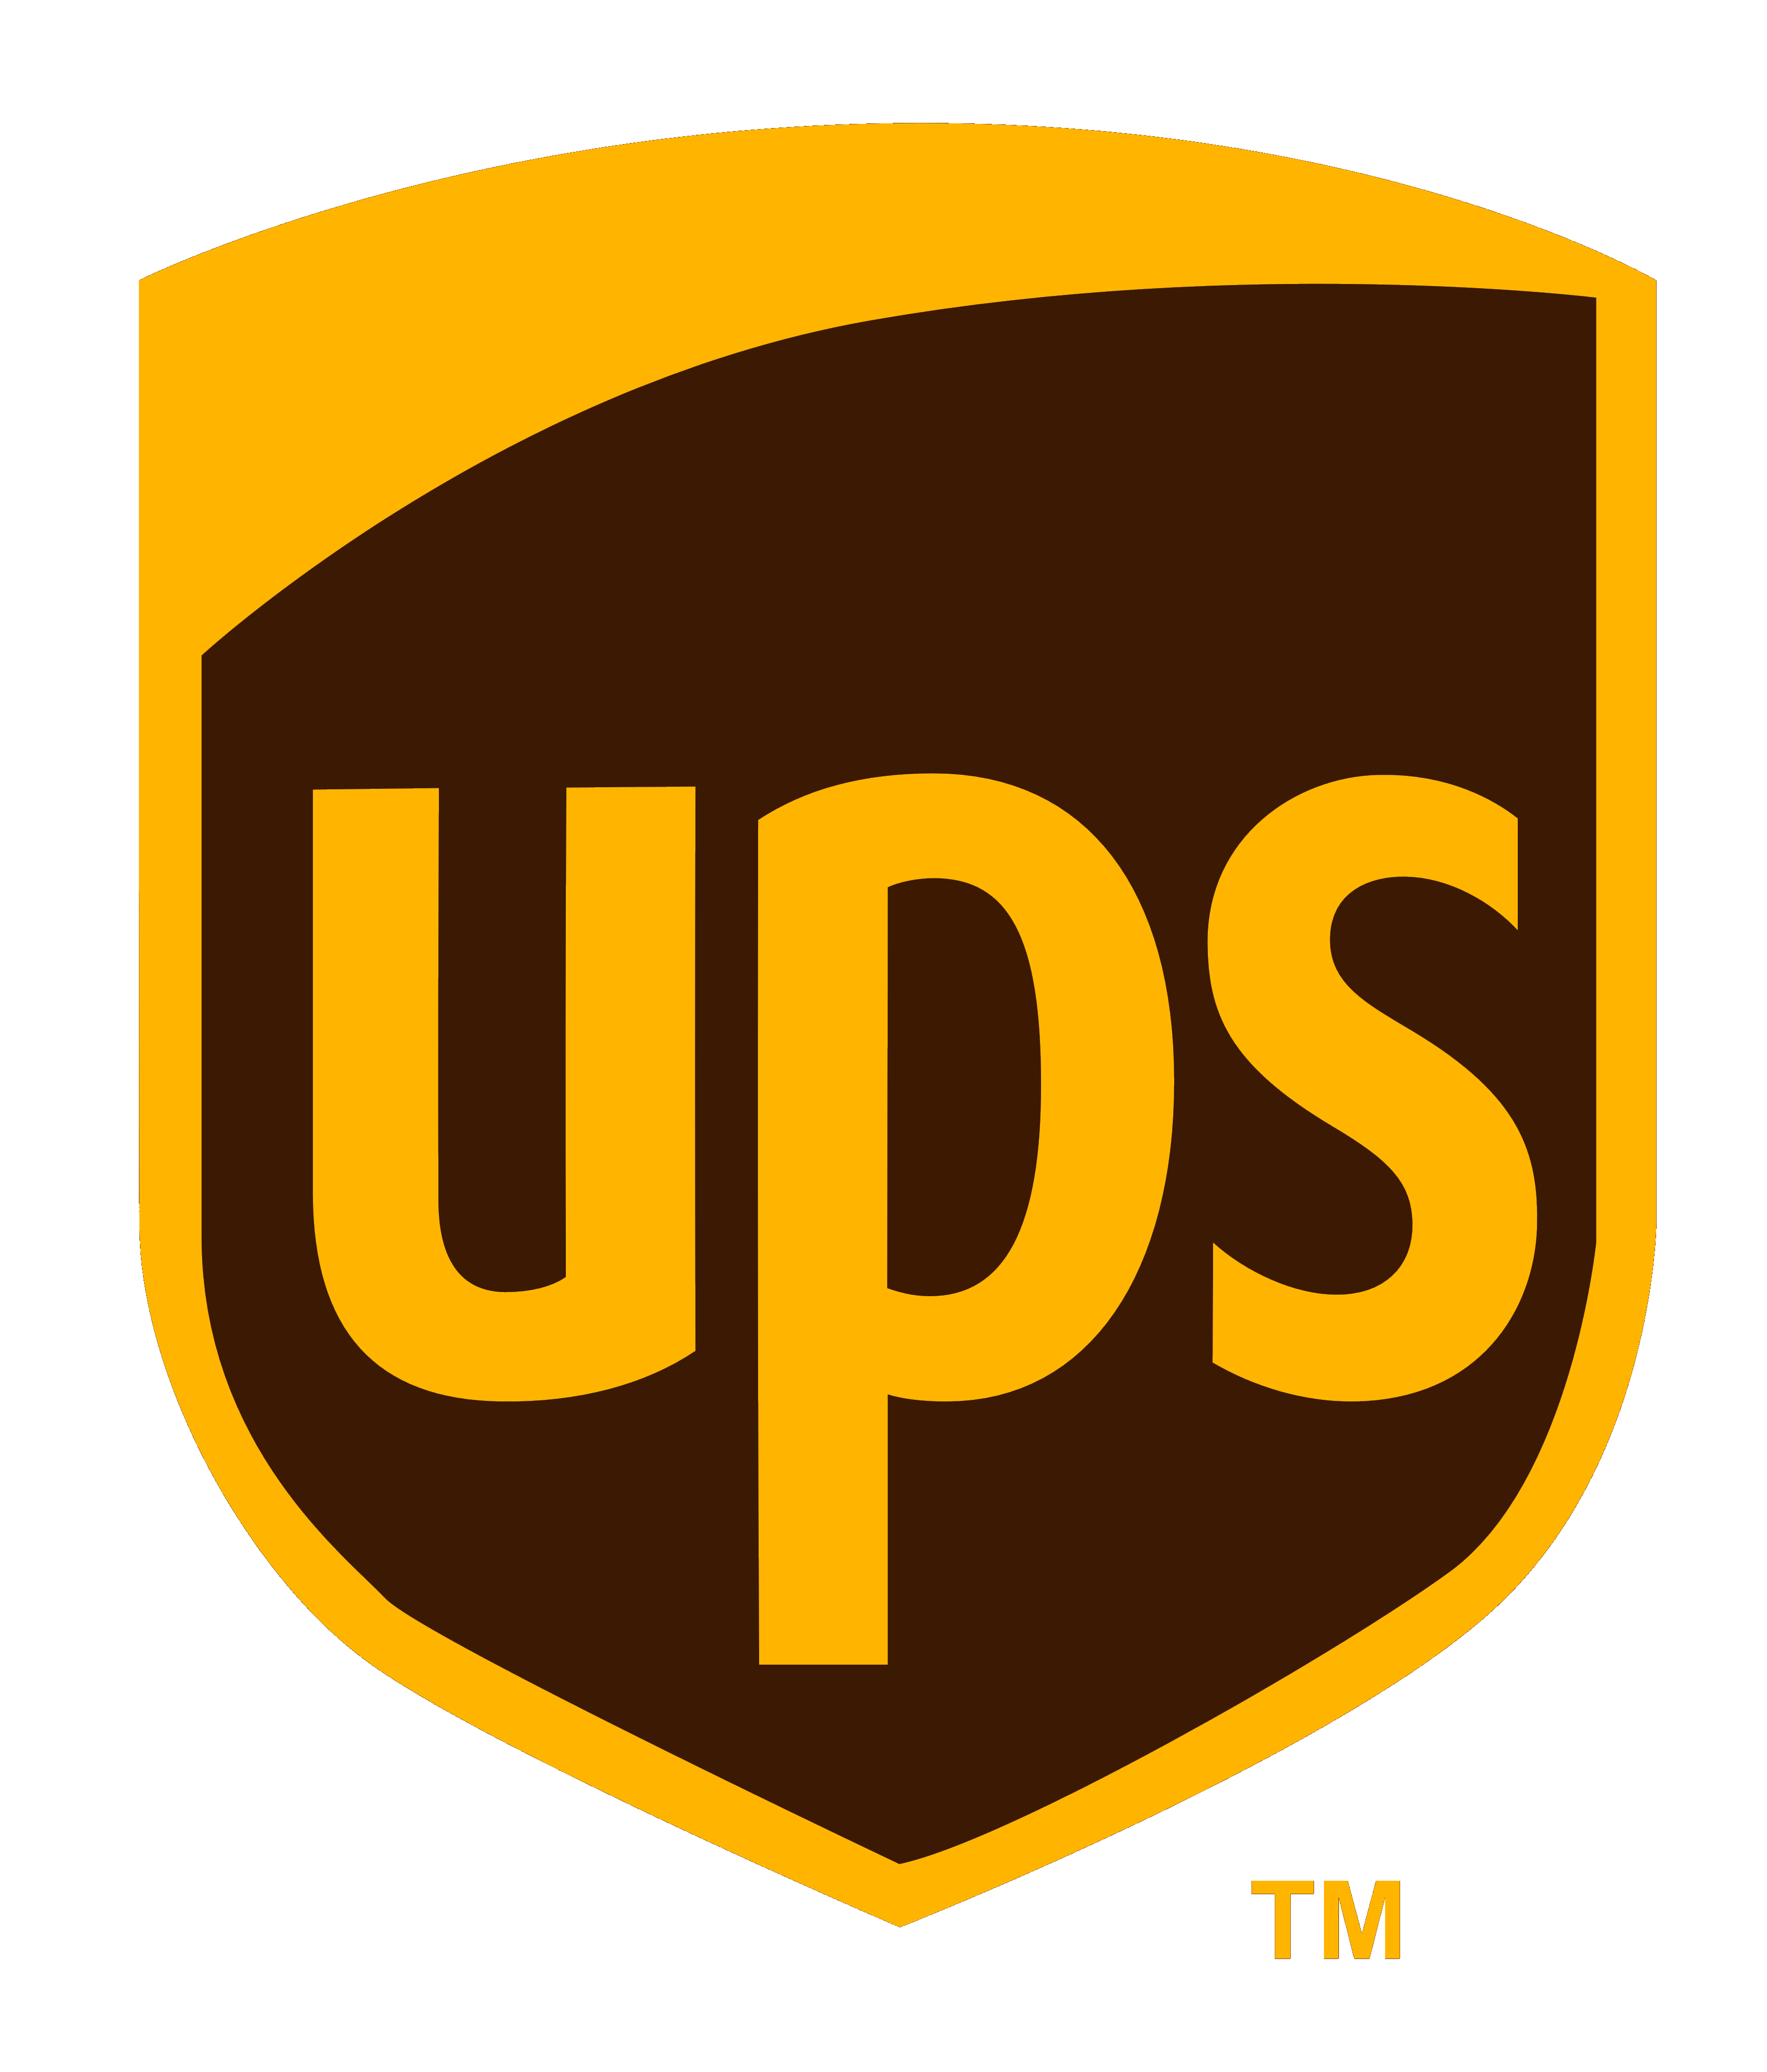 ... City Colleges Partnering With UPS To Hire Thousands For Holiday Season